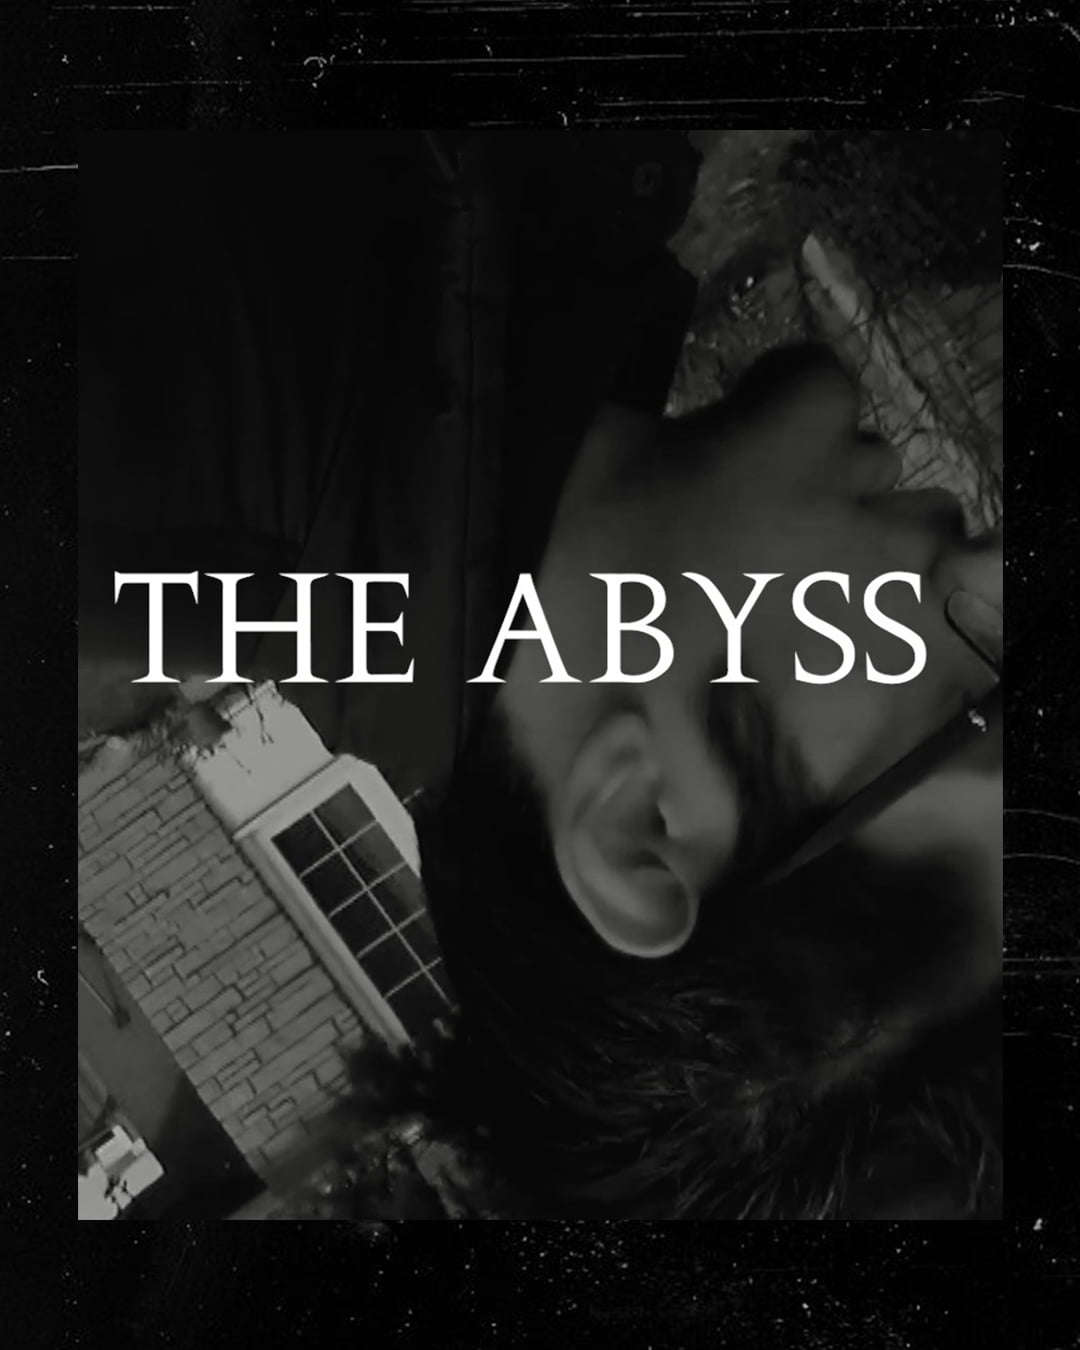 The Abyss | 2 Minute Short Horror 2020